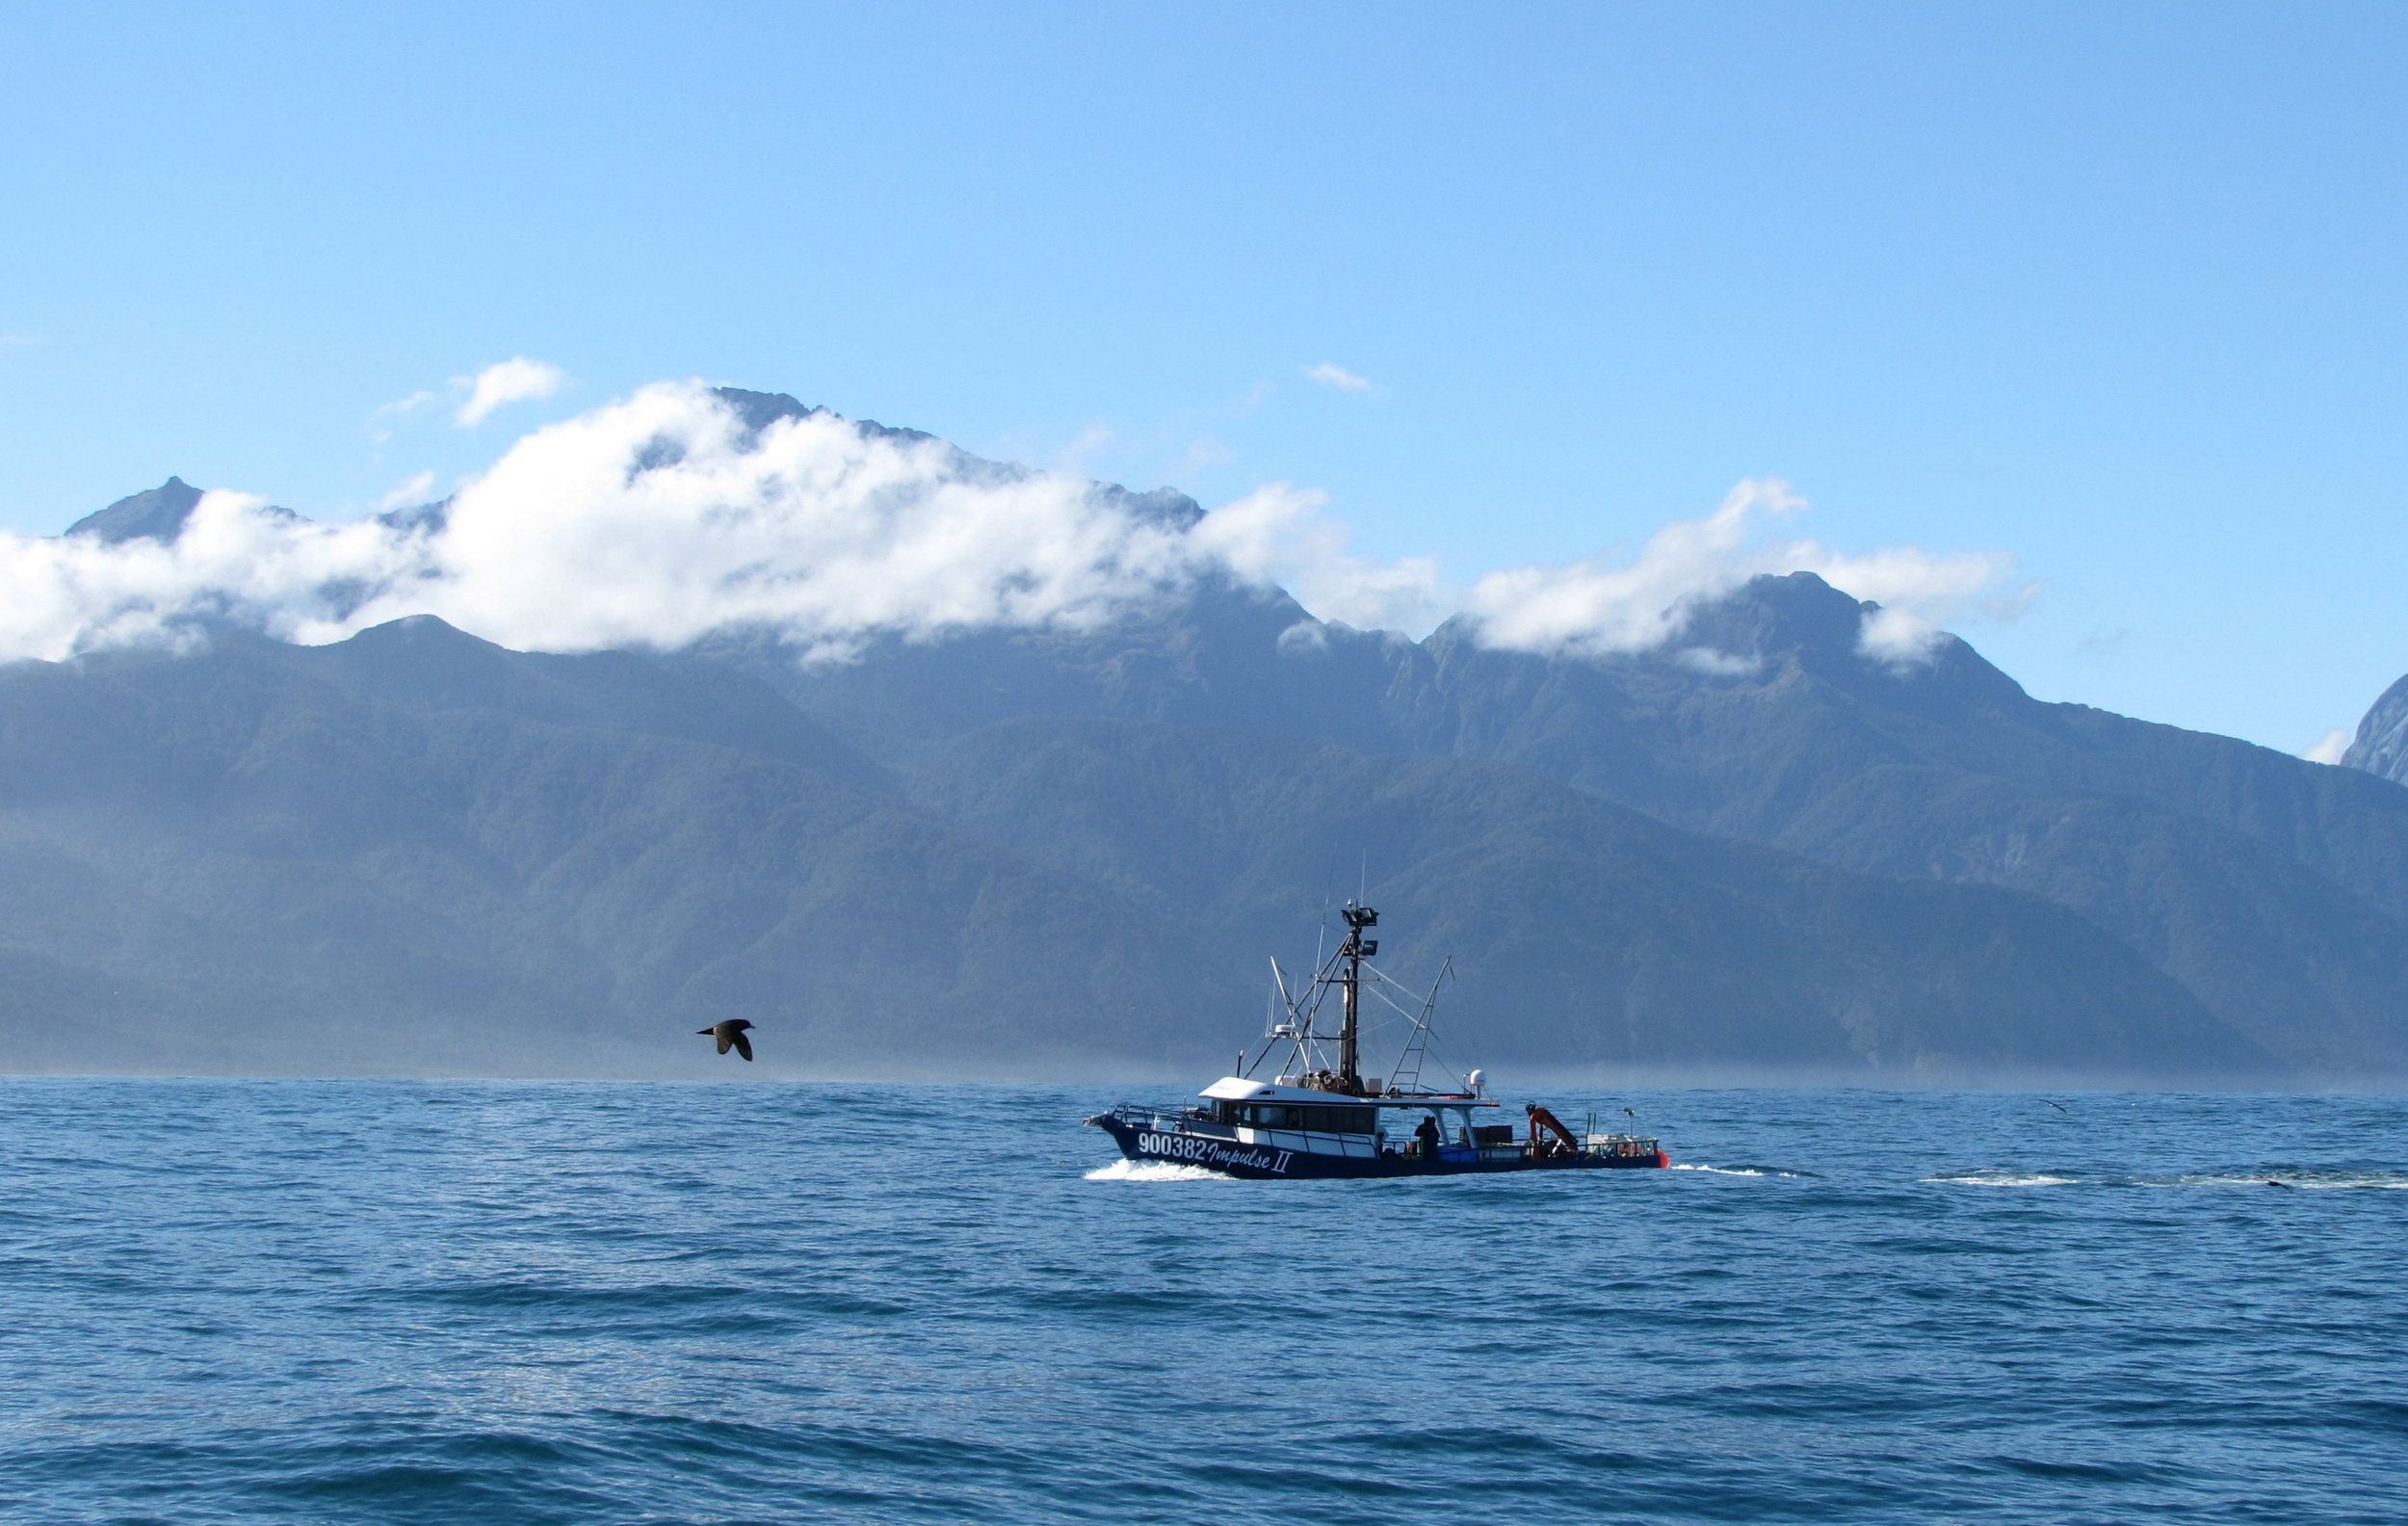 A fishing boat at the entrance to Milford Sound